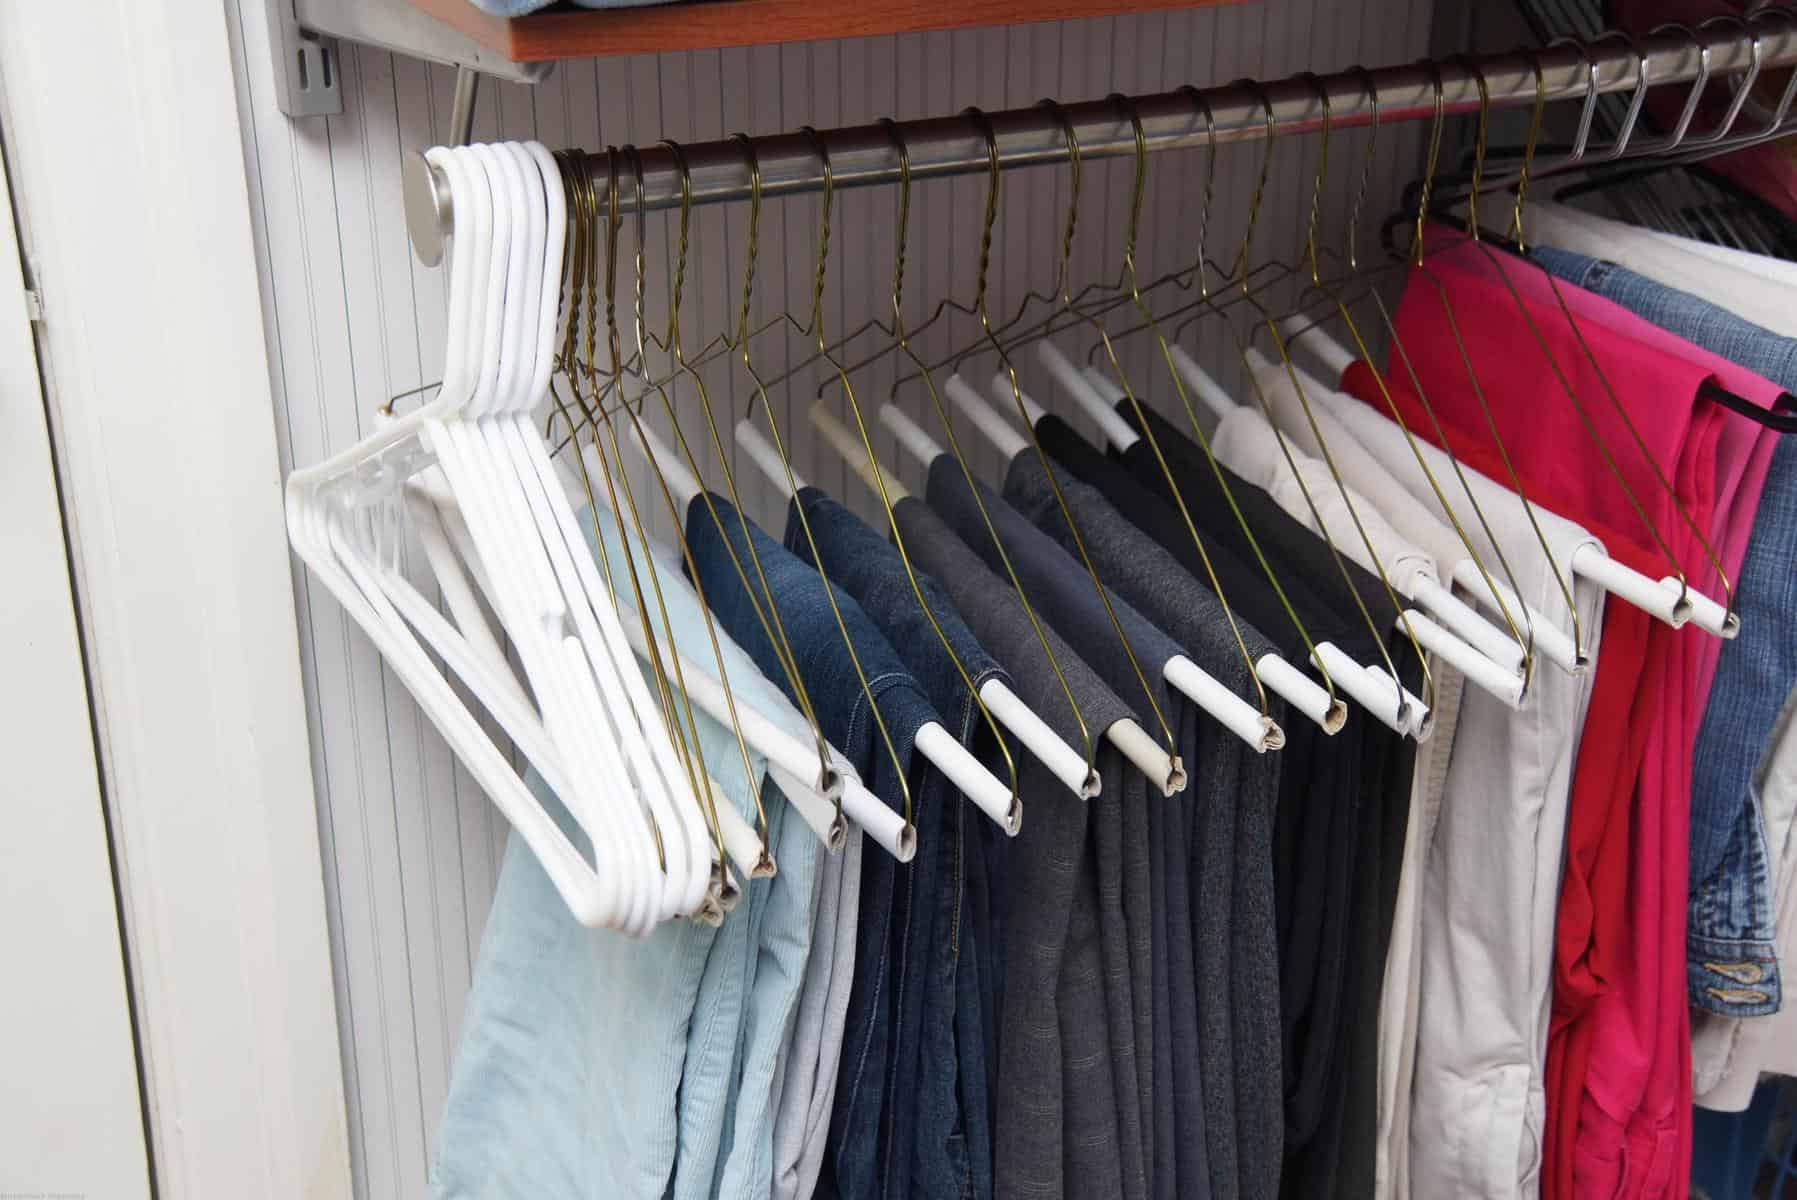 Pants Hangers When Organizing In Closet